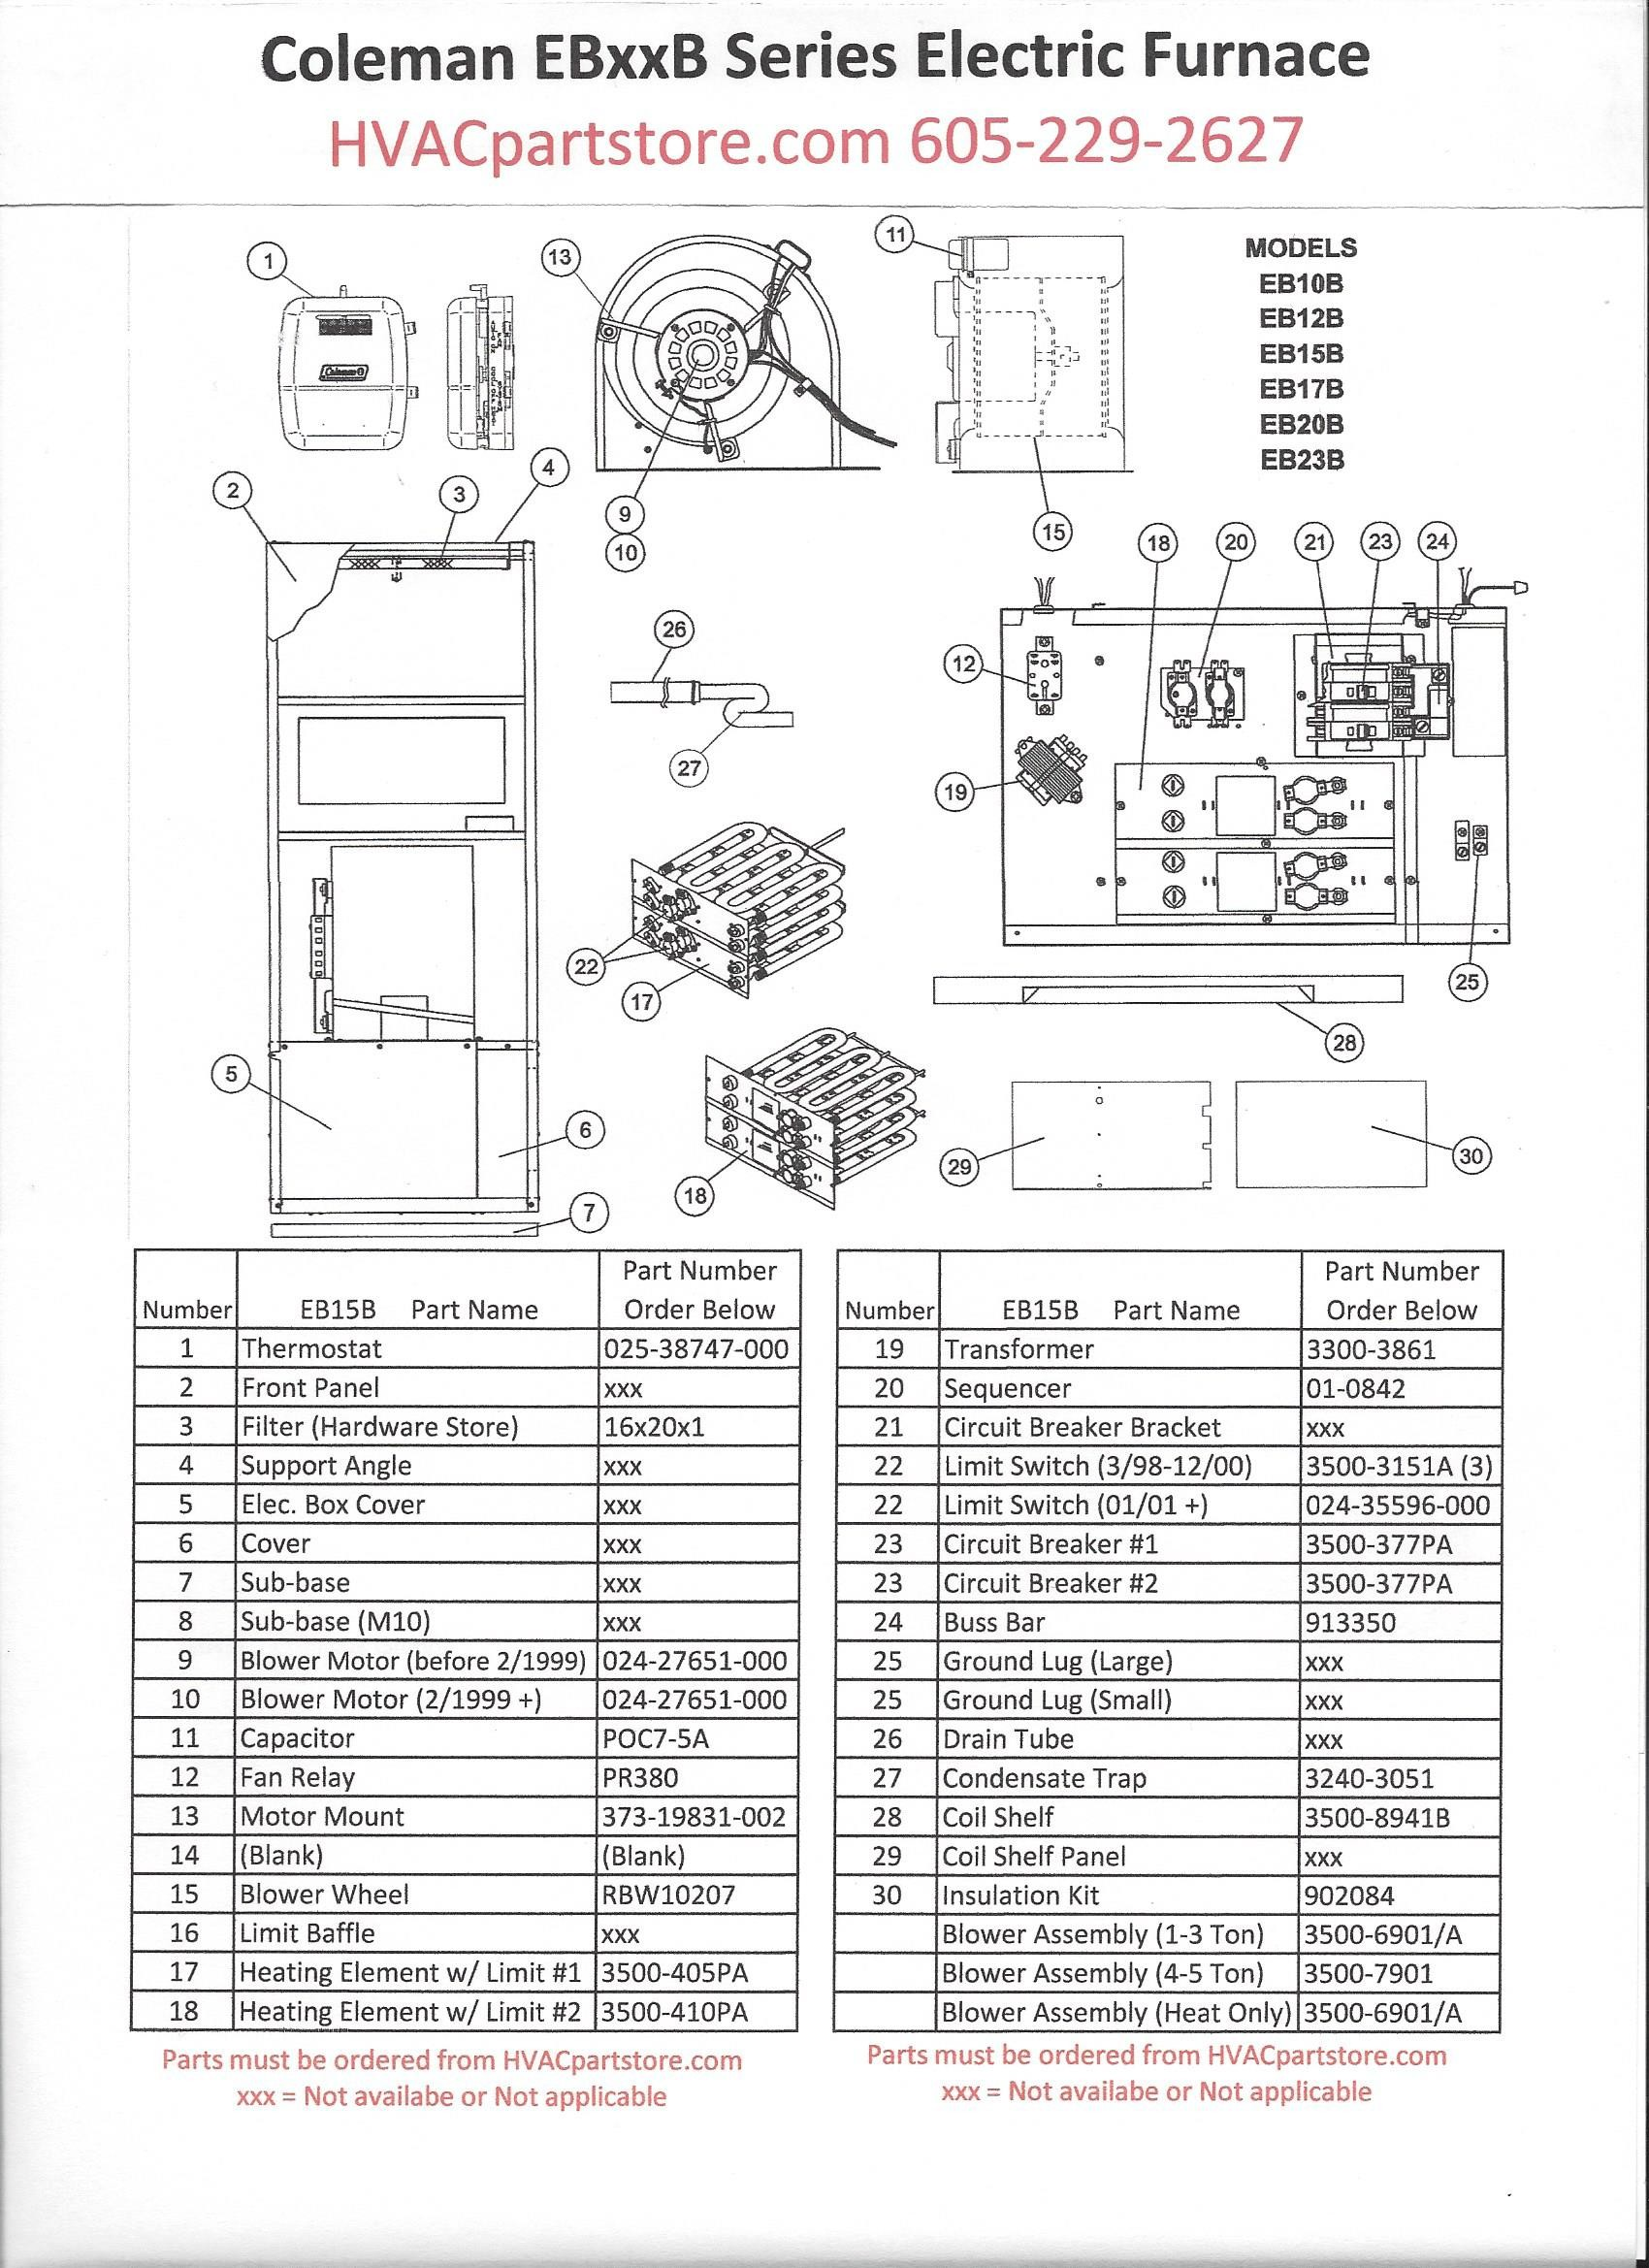 Wiring Diagram Taos Camper - Wiring Diagram And Schematics on coleman pop up battery wire, coleman camper water pump, coleman camper accessories,